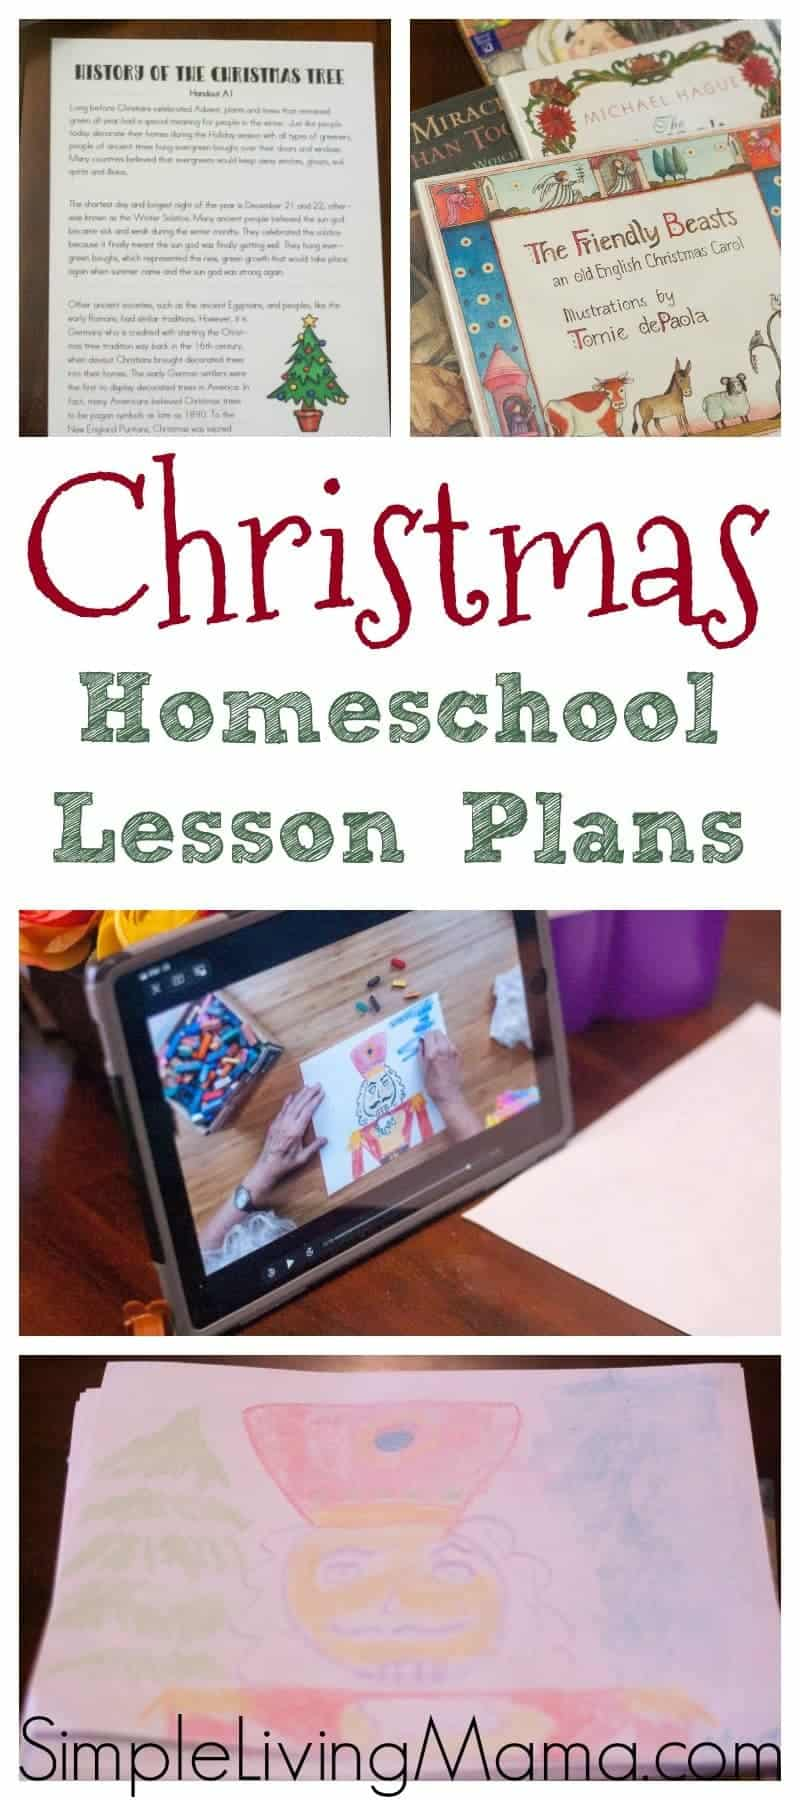 Christmas Homeschool Lesson Plans Simple Living Mama